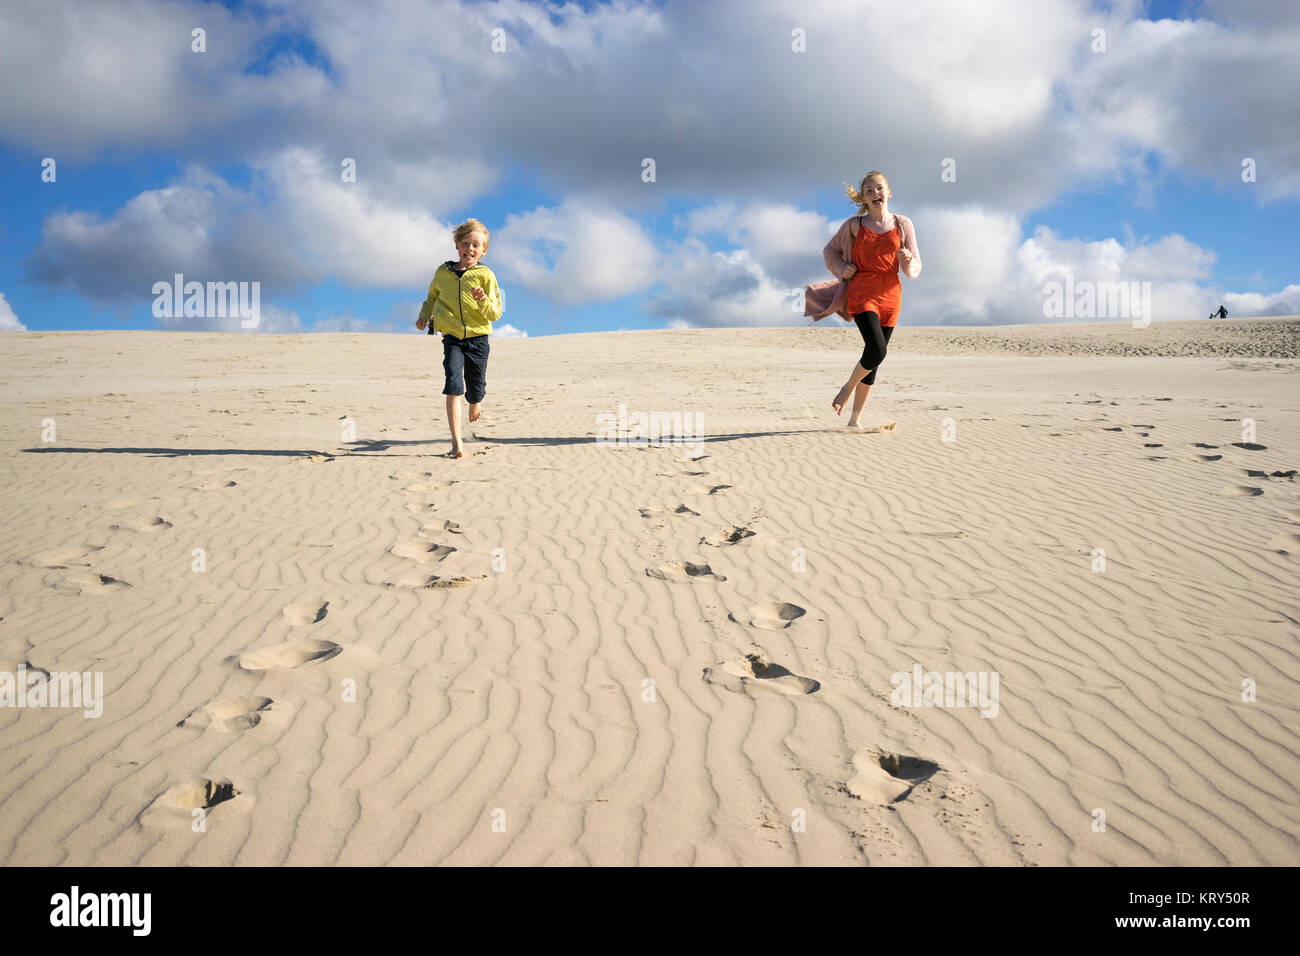 Two children running along the beach - Stock Image